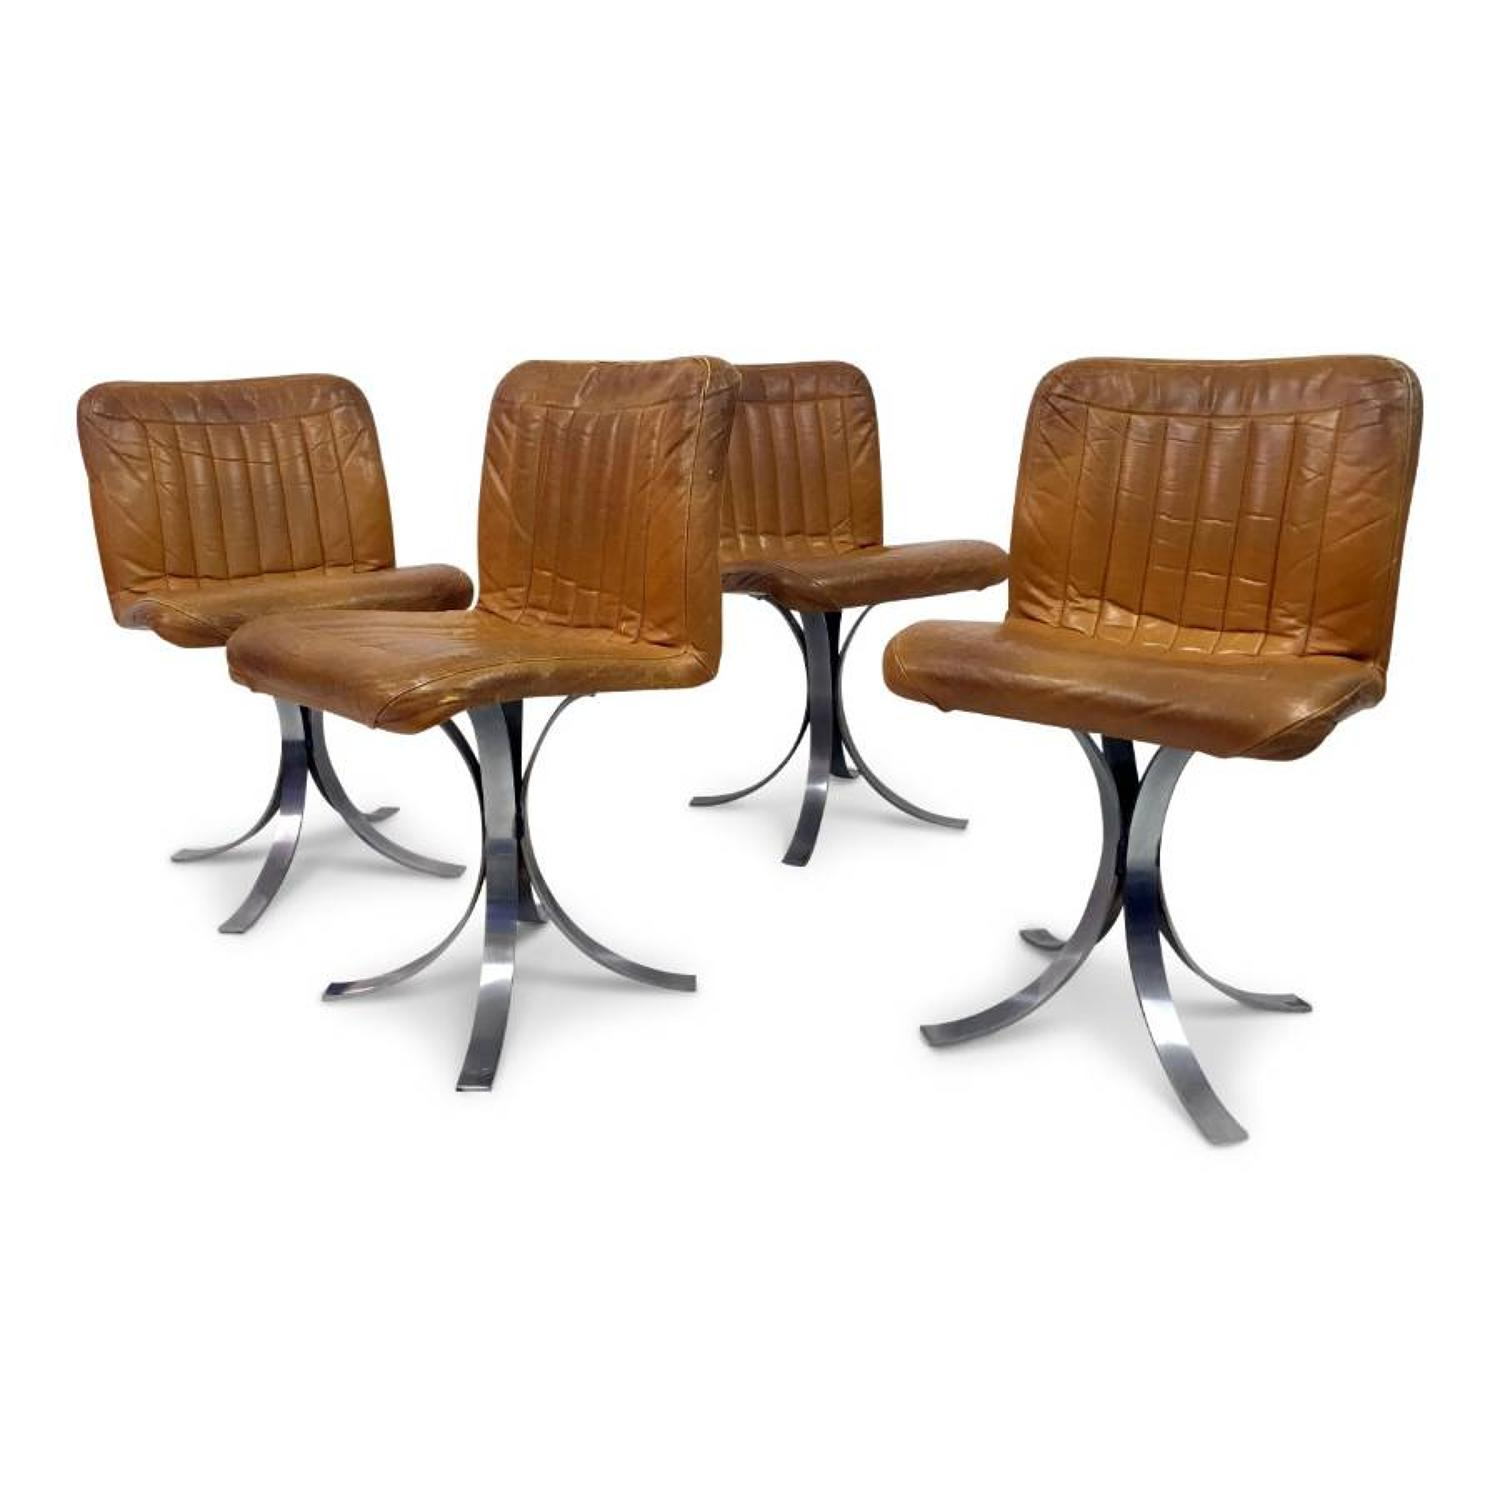 A set of four French leather and chrome dining chairs